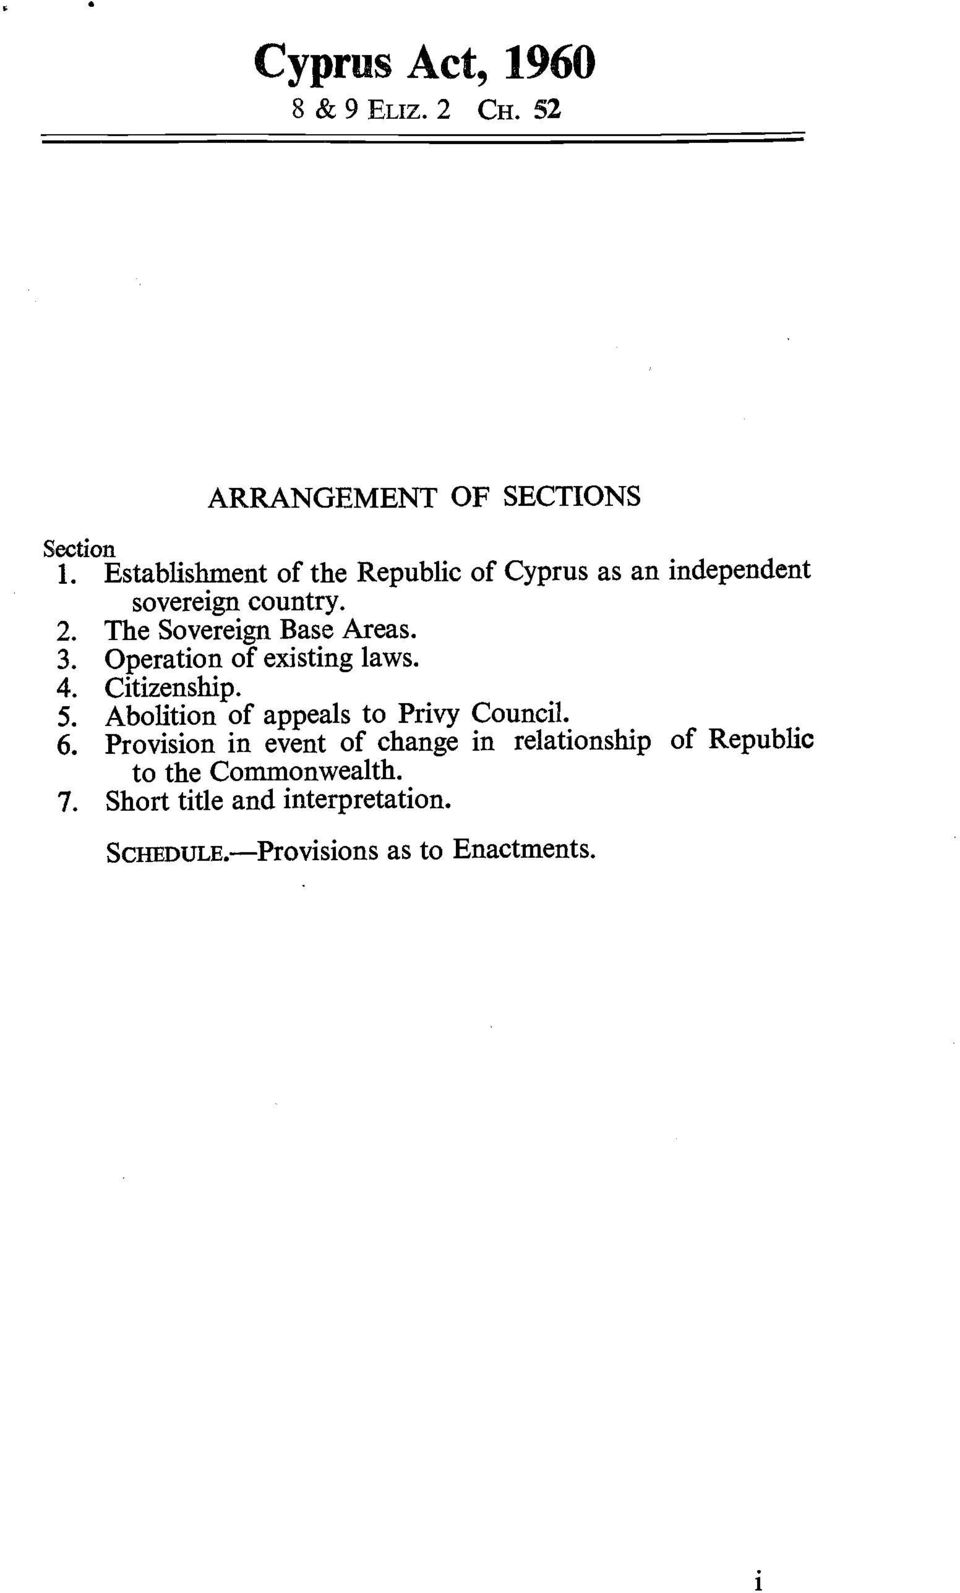 3. Operation of existing laws. 4. Citizenship. 5. Abolition of appeals to Privy Council. 6.